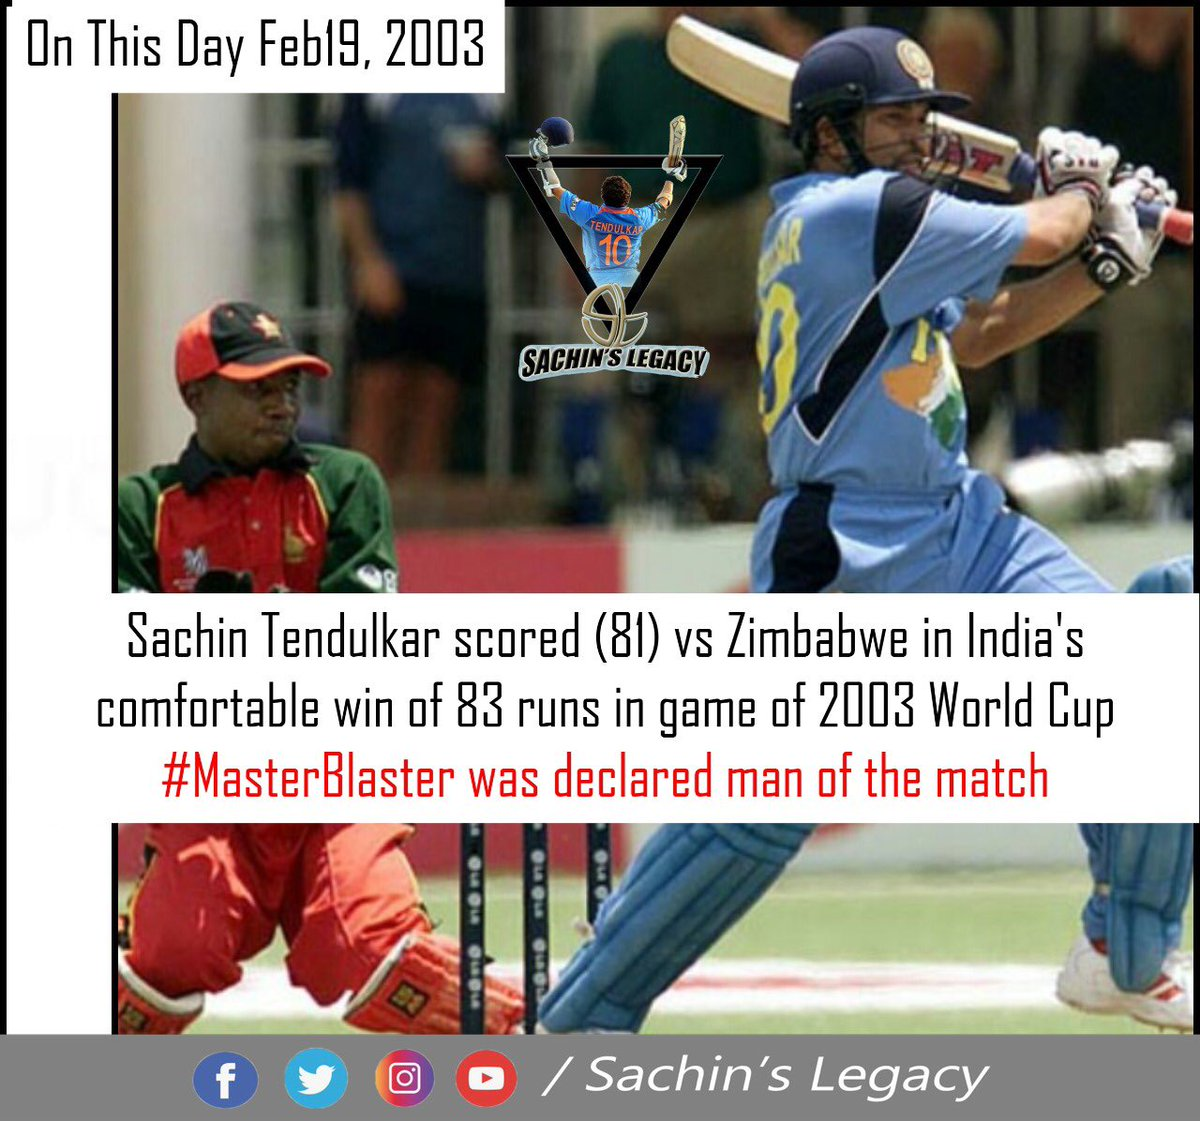 #OnThisDay in 2003 #WorldCup  #SachinTendulkar scored 81 against #Zimbabwe and #TeamIndia won the match by 83 runs #Master was declared man of the match  -A post from @sachin_rt pakistani fan page